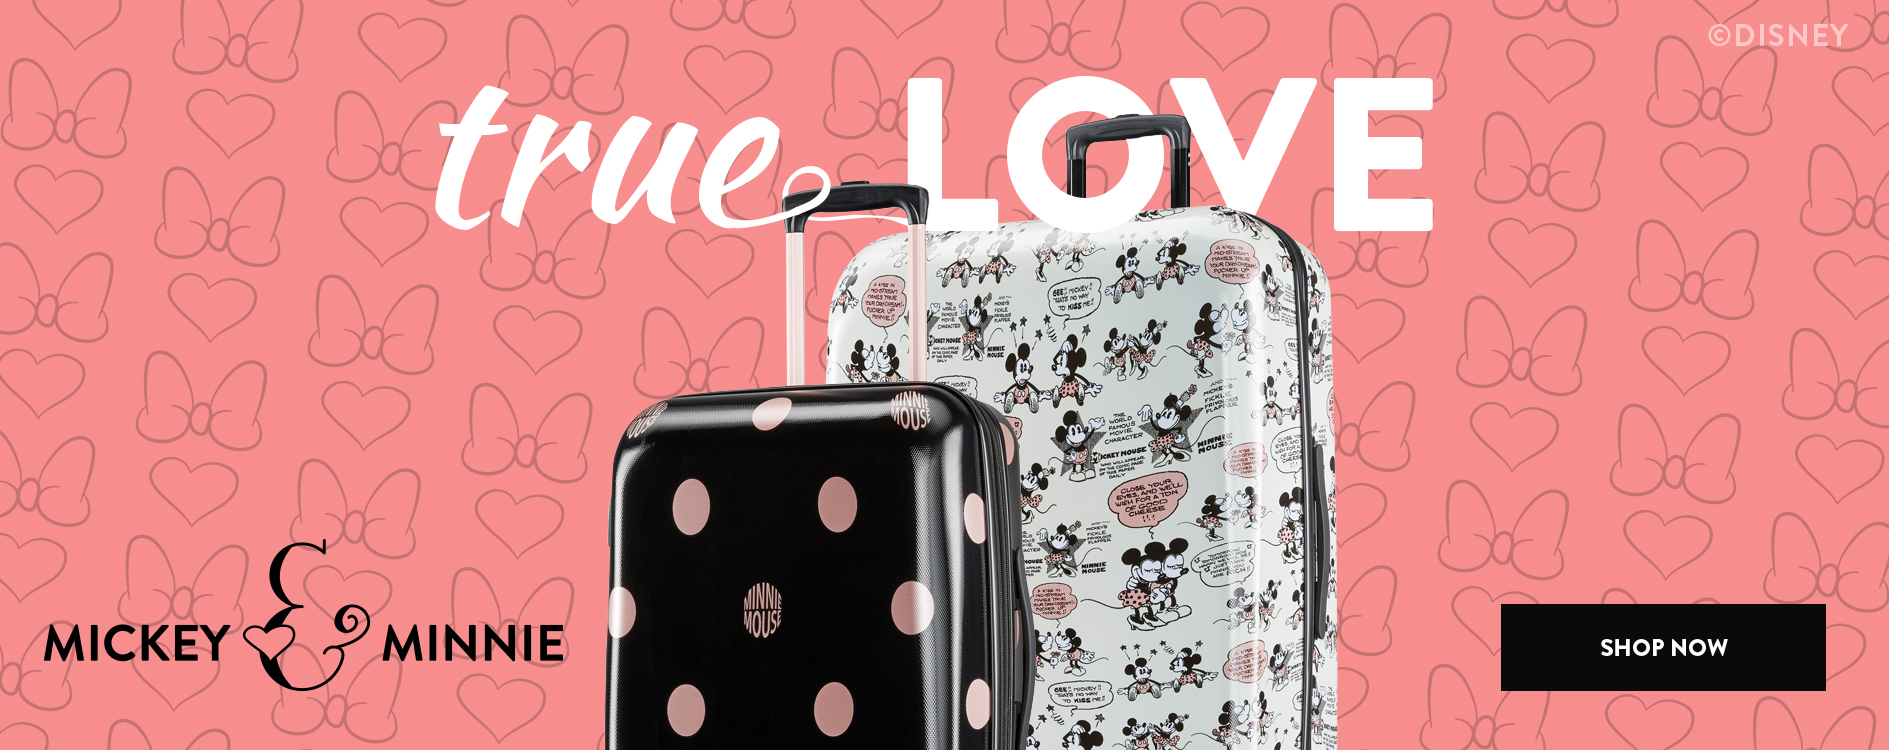 6c9fa0a17c3 It s true love with Mickey and Minnie! Shop American Tourister Partnered  With Disney Luggage Collection